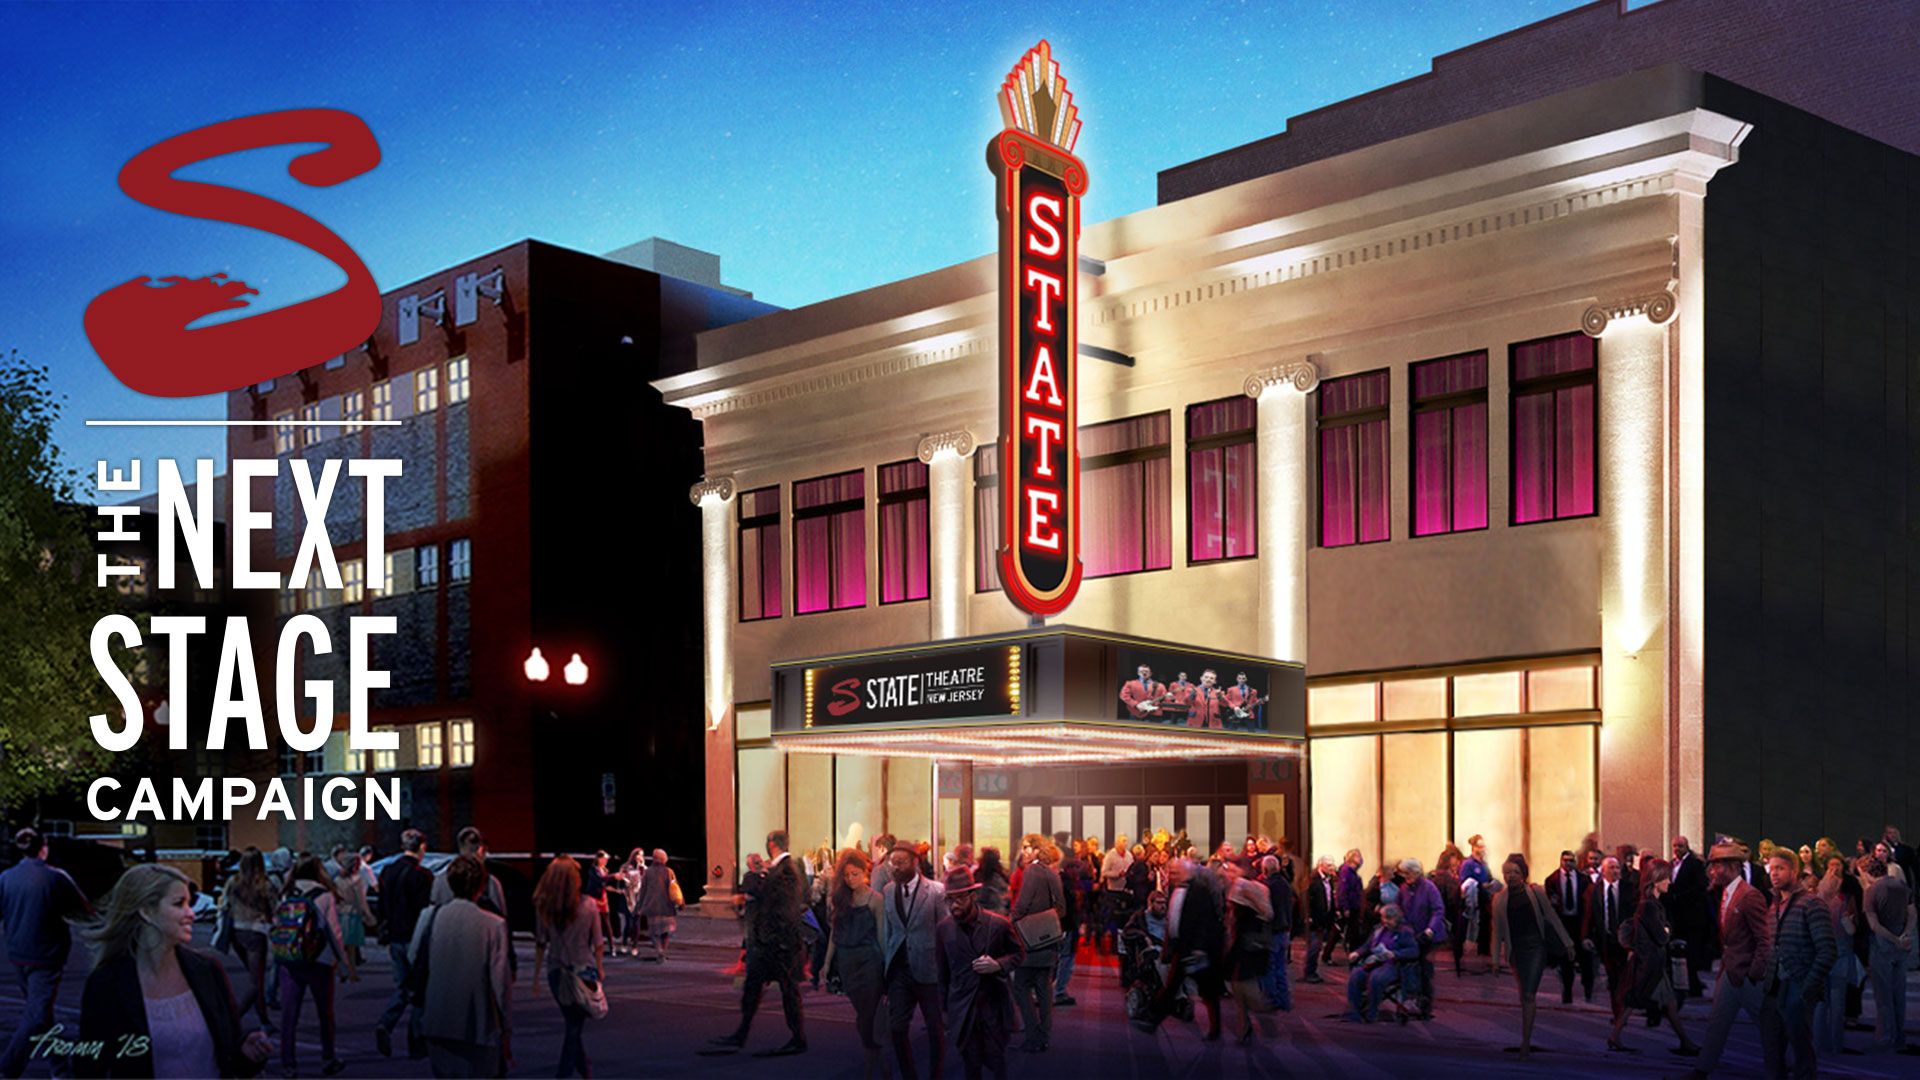 State Theatre Facade Rendering